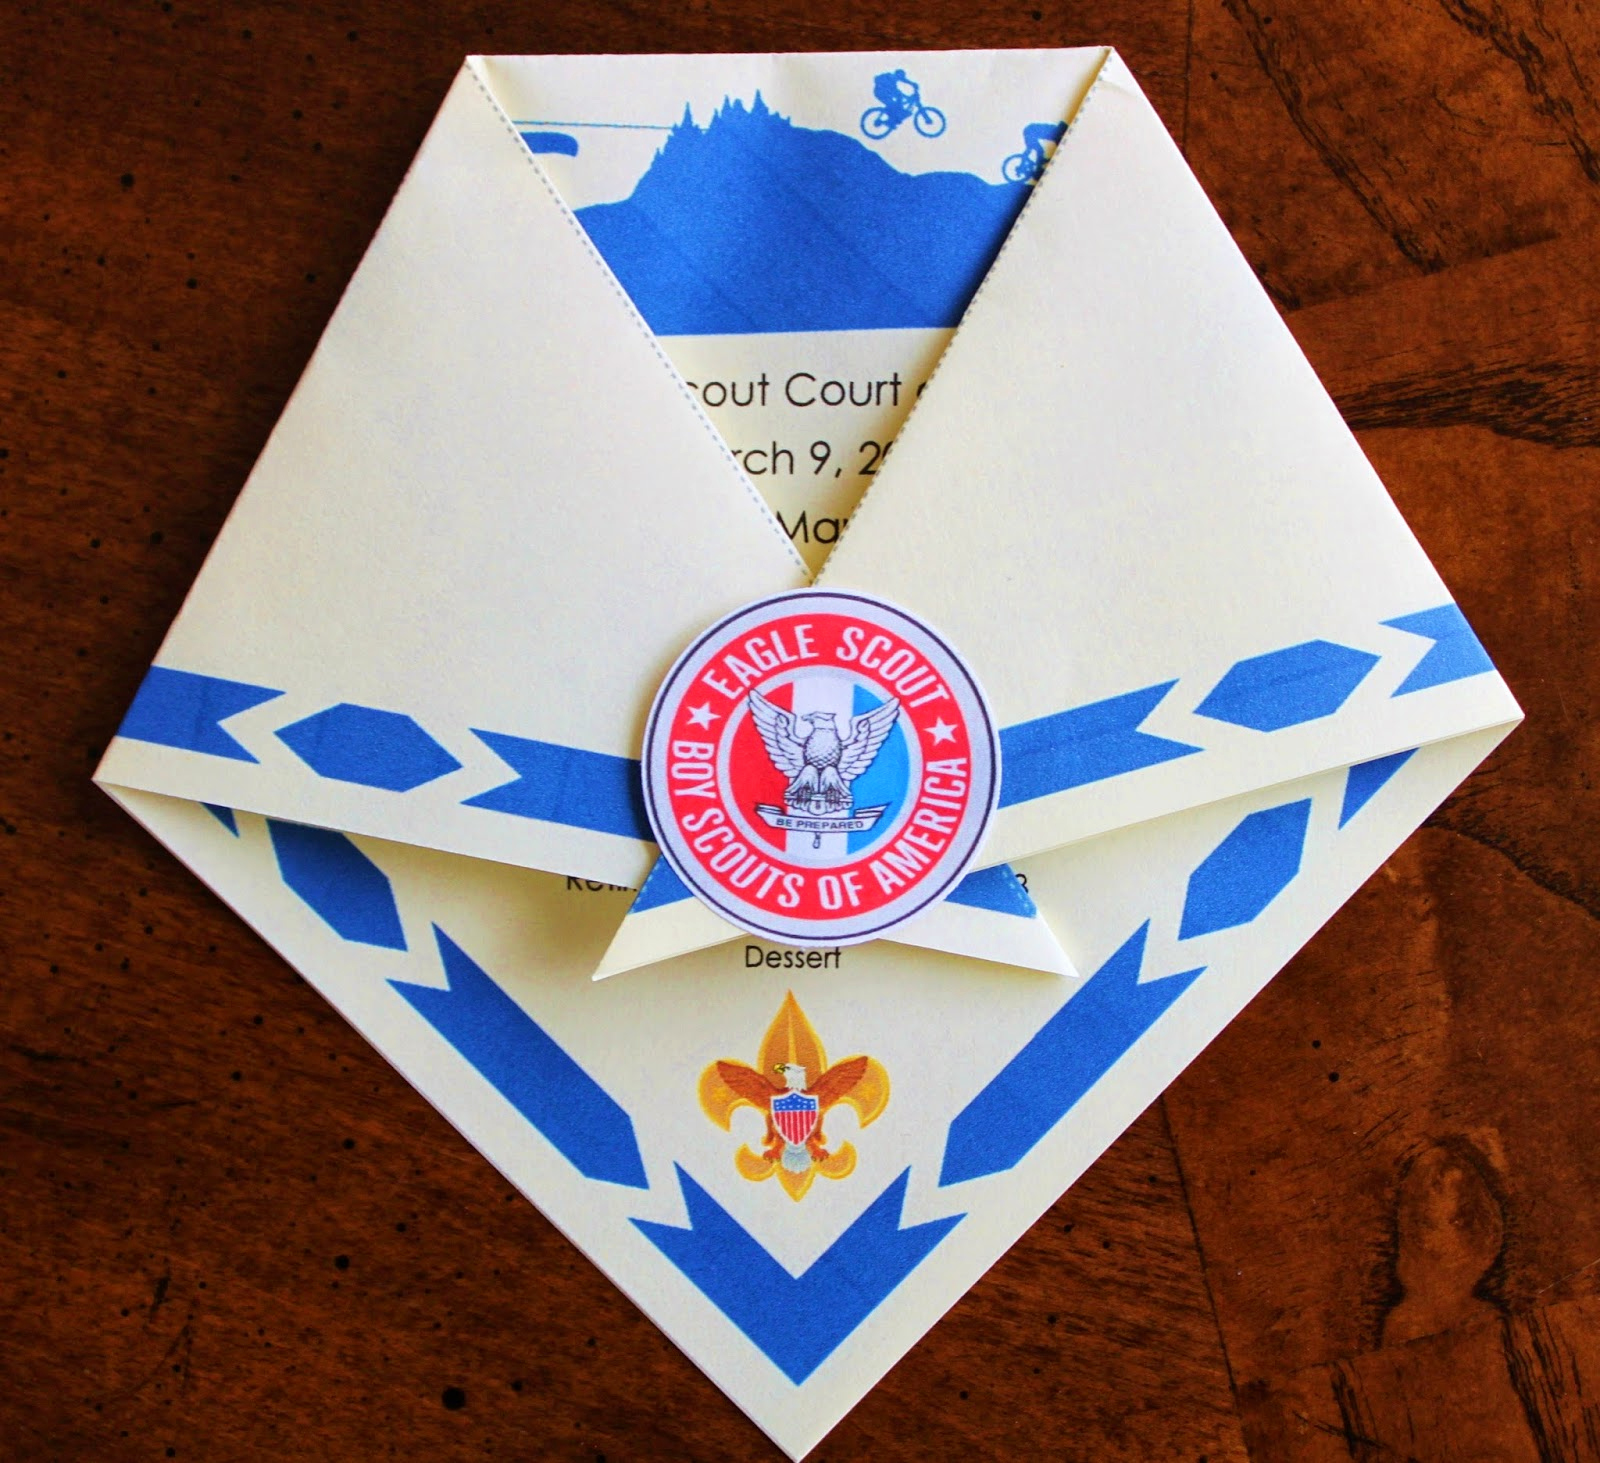 Eagle Scout Invitation Ideas Luxury Akela S Council Cub Scout Leader Training Eagle Scout